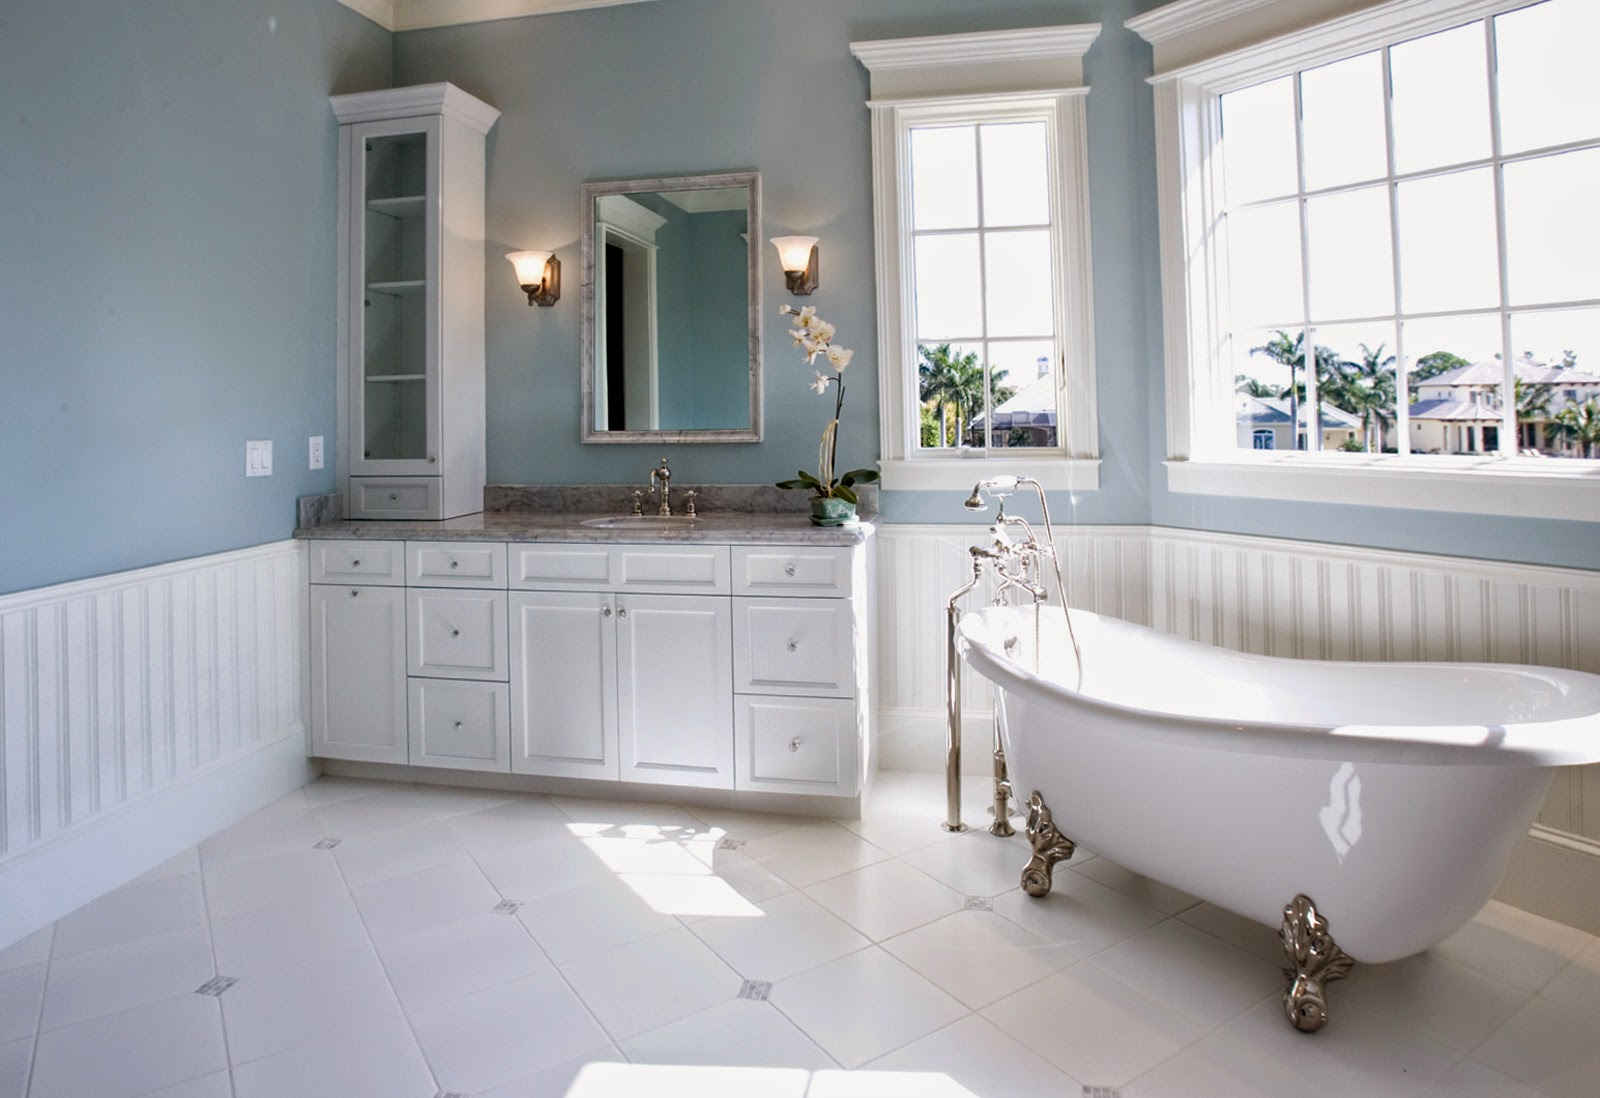 Top 10 beautiful bathroom design 2014 home interior blog for House bathroom